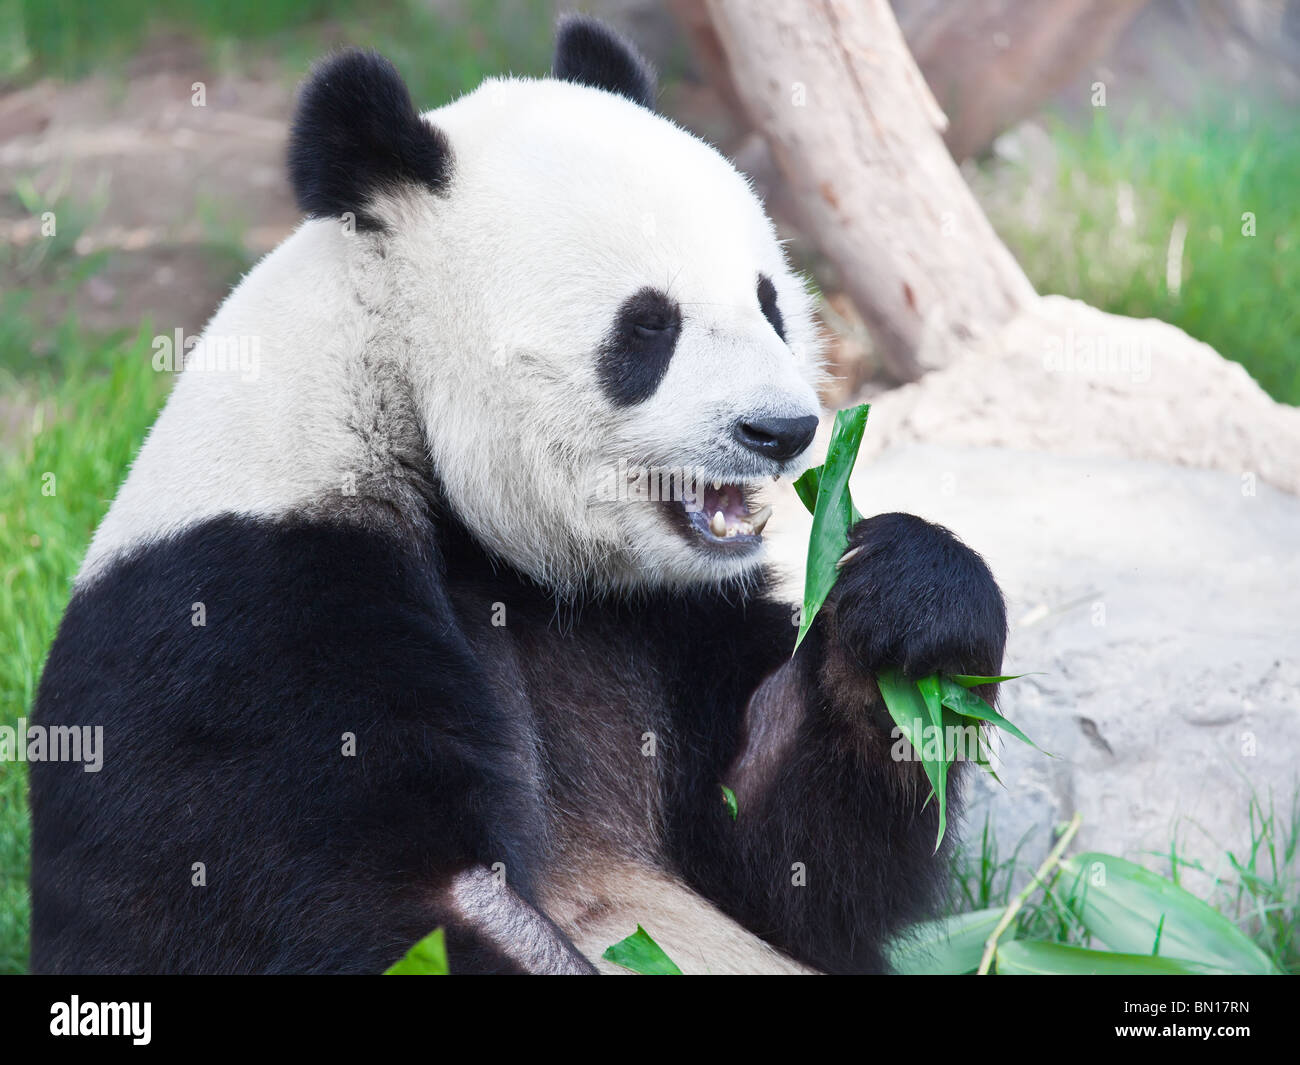 panda stockfotos panda bilder alamy. Black Bedroom Furniture Sets. Home Design Ideas